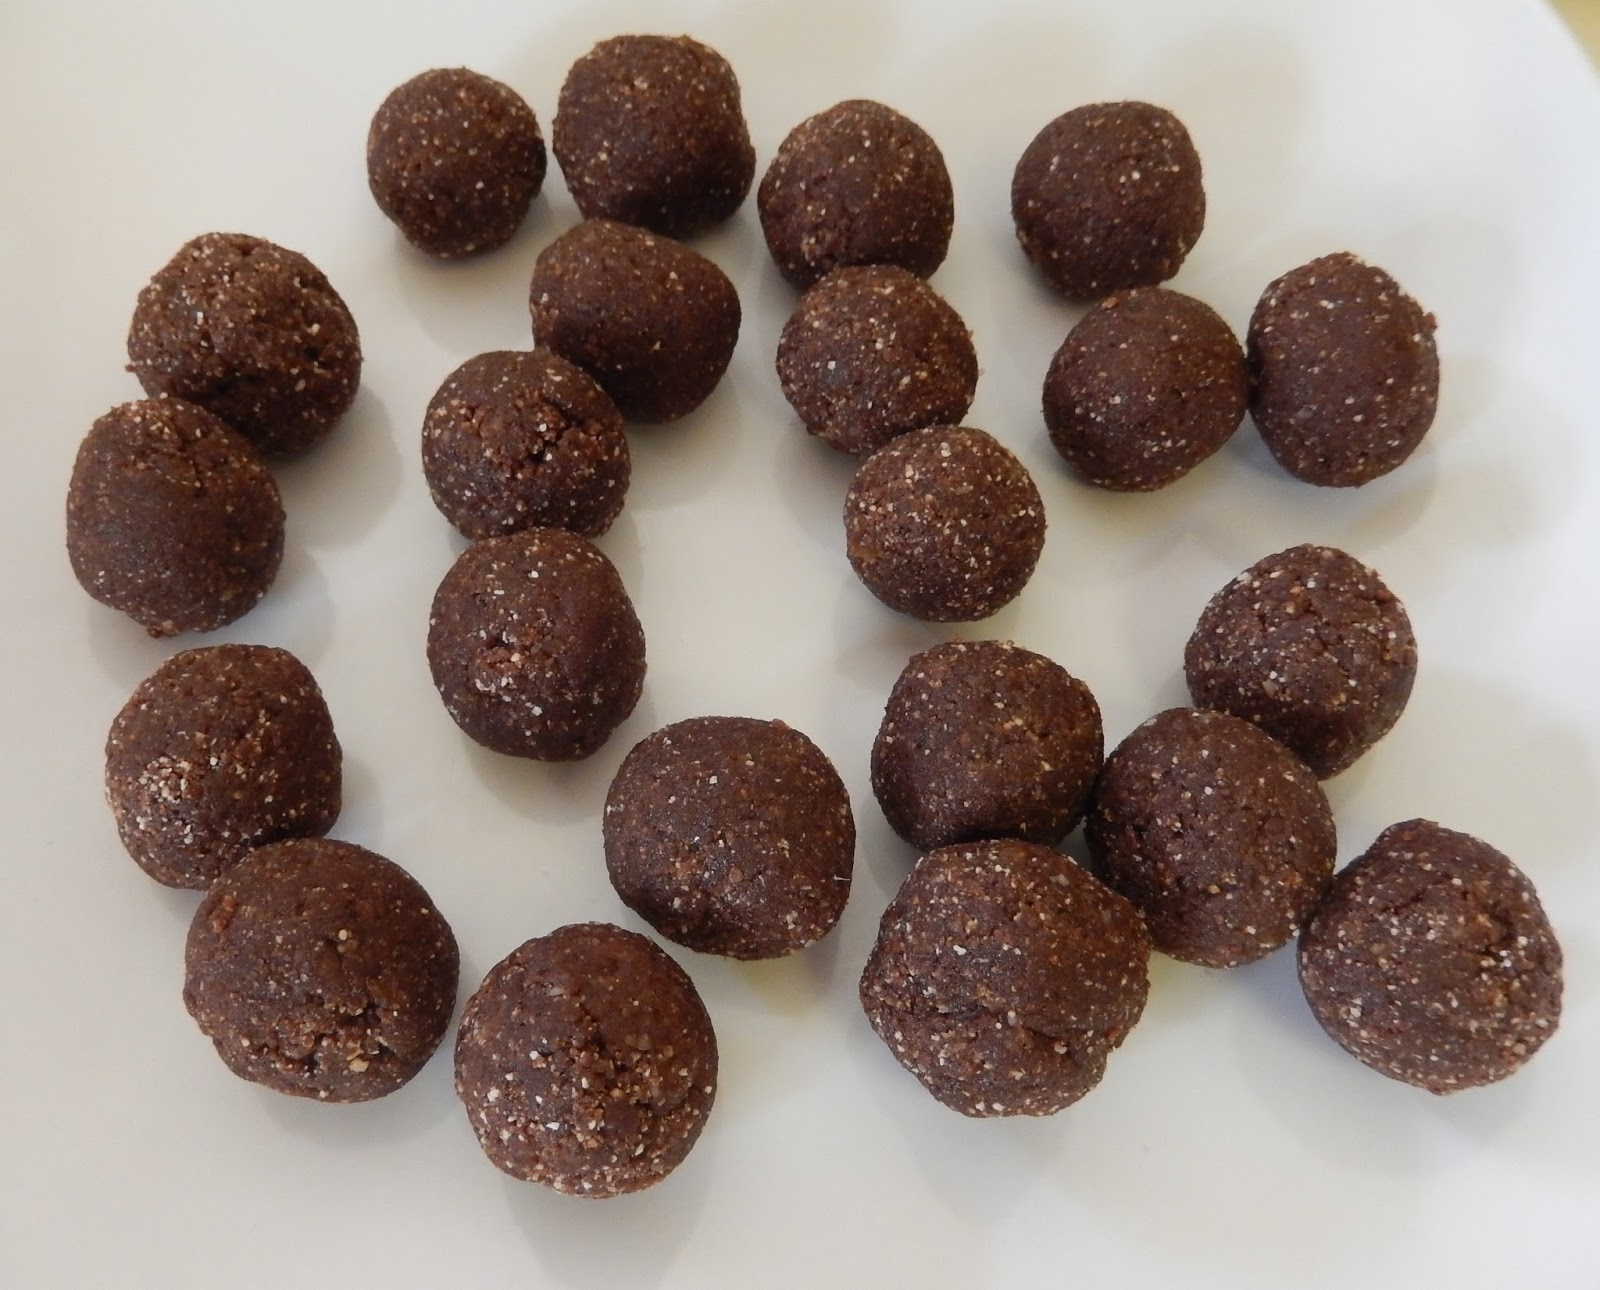 theworldaccordingtoeggface: Chocolate Mint Protein Balls and Shakes